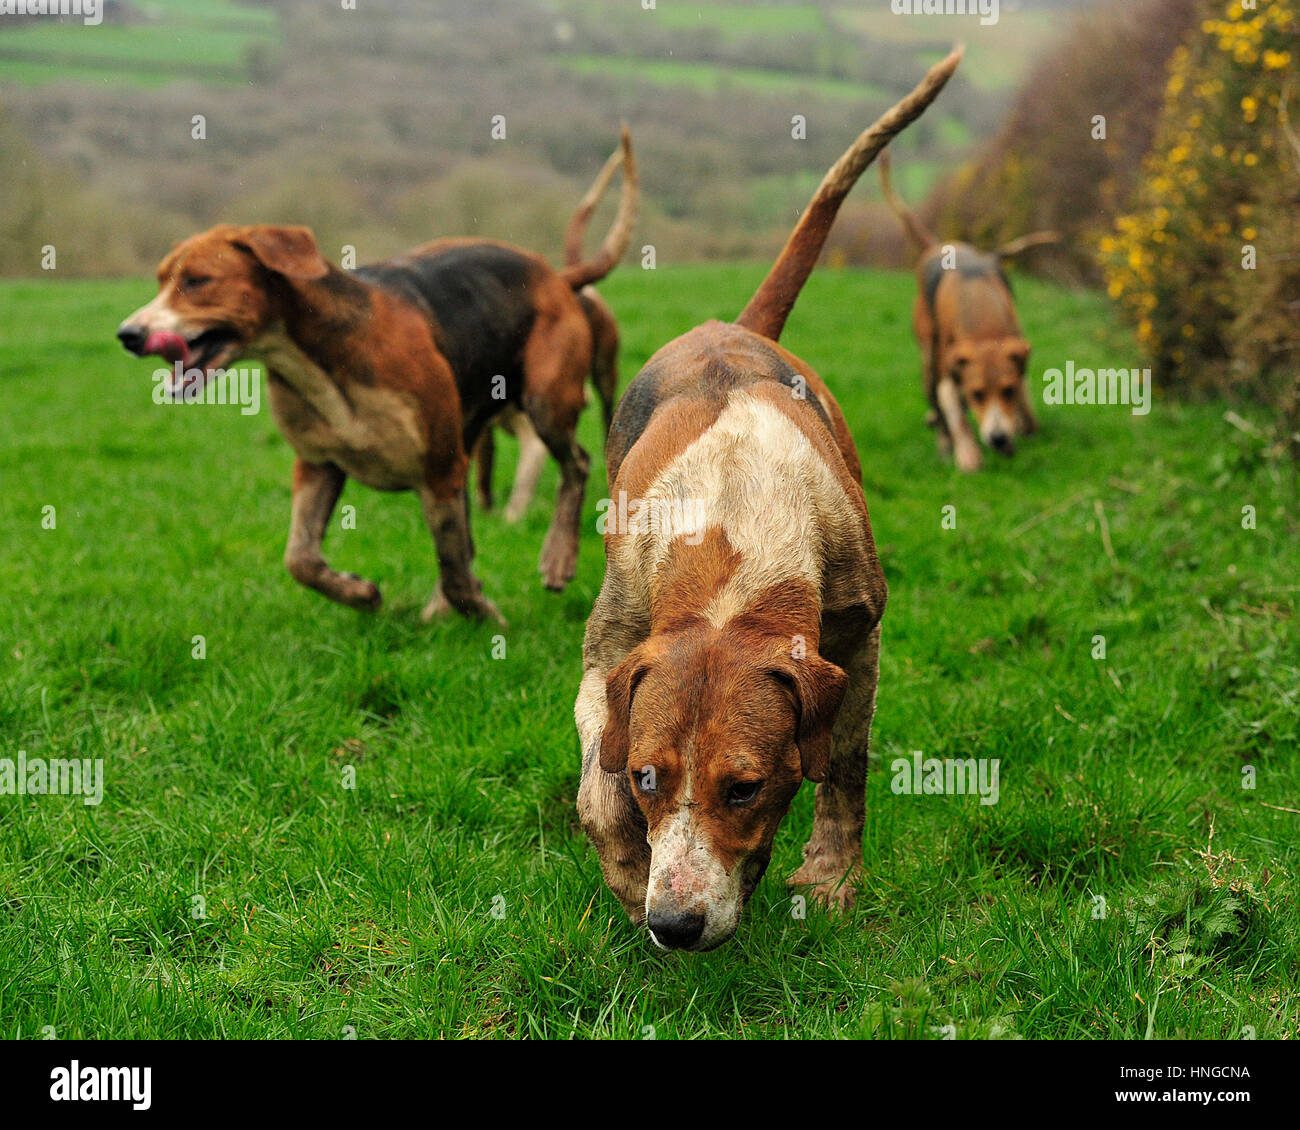 foxhouds following a scent - Stock Image